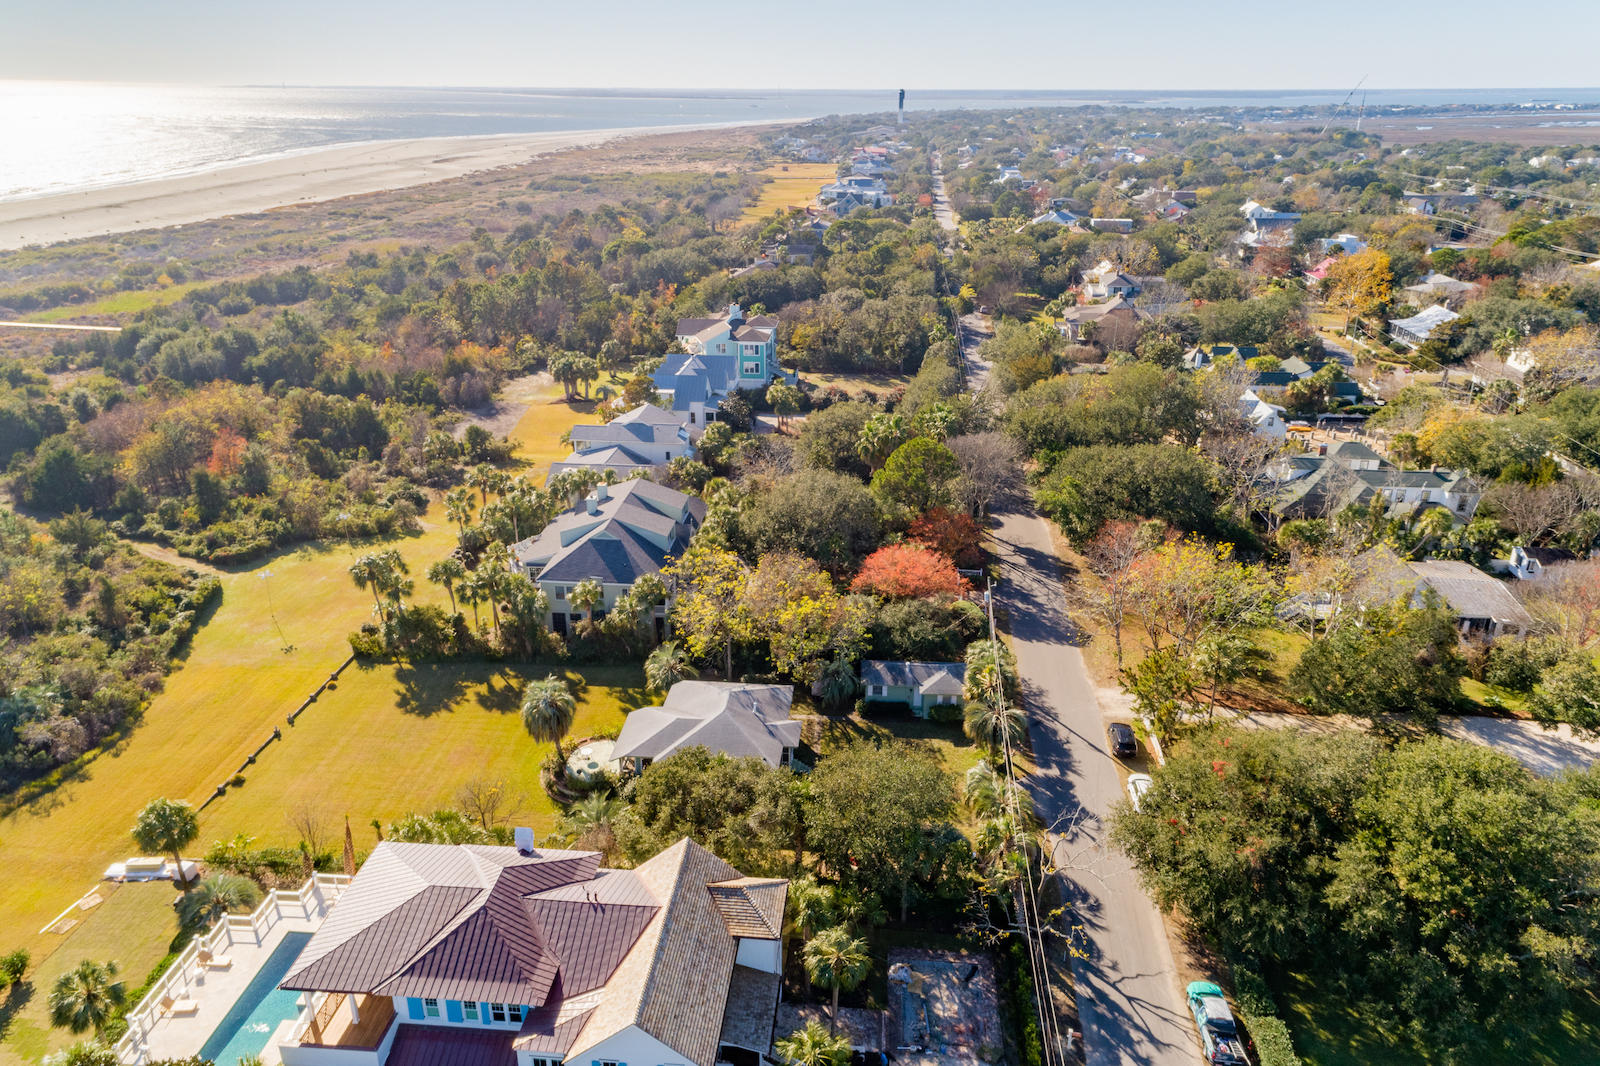 Sullivans Island Homes For Sale - 2525 Atlantic, Sullivans Island, SC - 0